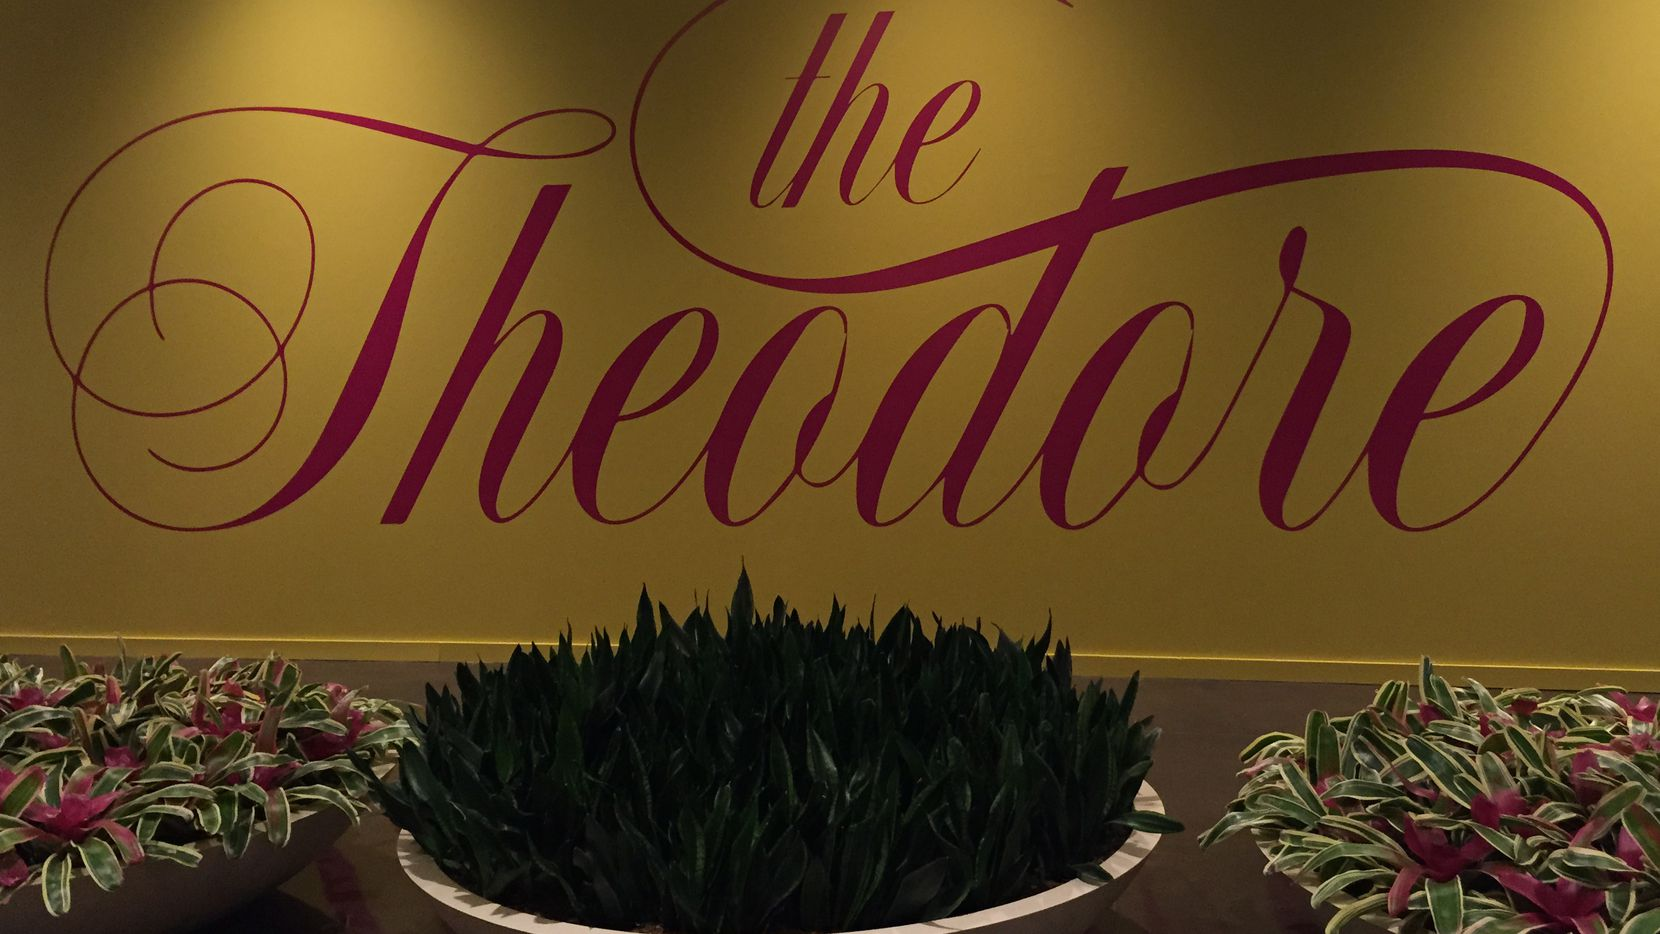 I've been asking about the Theodore since early May, when this logo was painted on the side of the not-yet-open restaurant inside NorthPark Center.